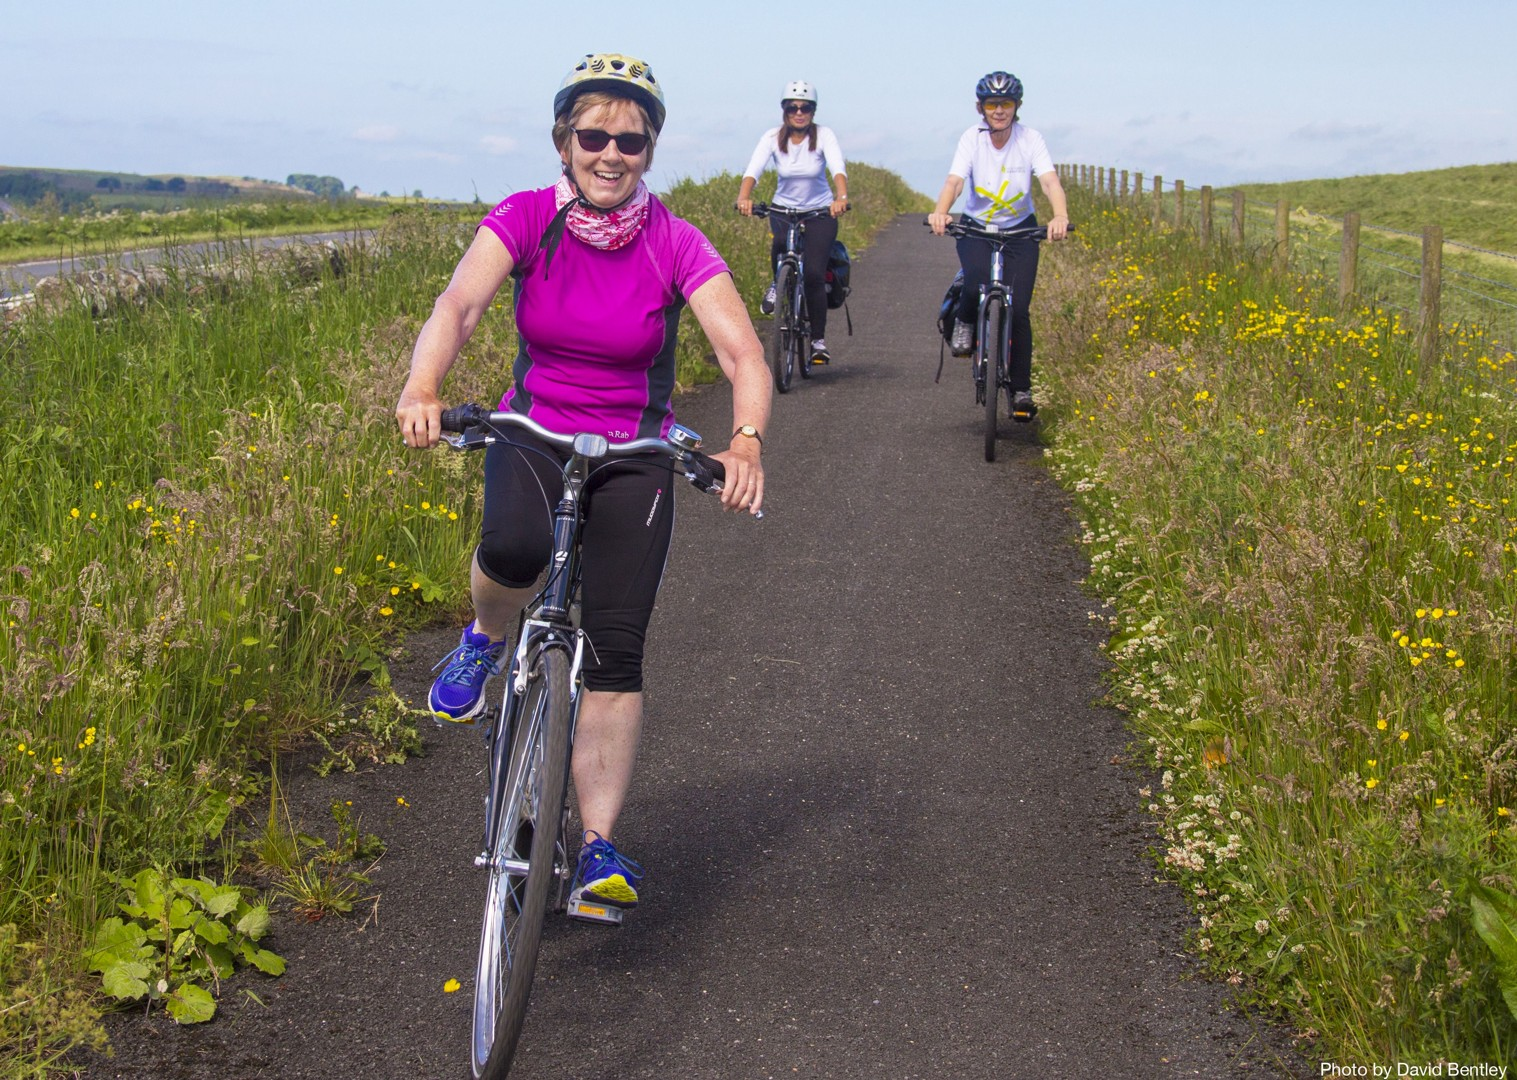 Self-Guided-Leisure-Cycling-Holiday-Hadrians-Cycleway-UK-forts-of-Birdoswald-Vindolanda.jpg - UK - Hadrian's Cycleway - 4 Days Cycling - Self-Guided Leisure Cycling Holiday - Leisure Cycling